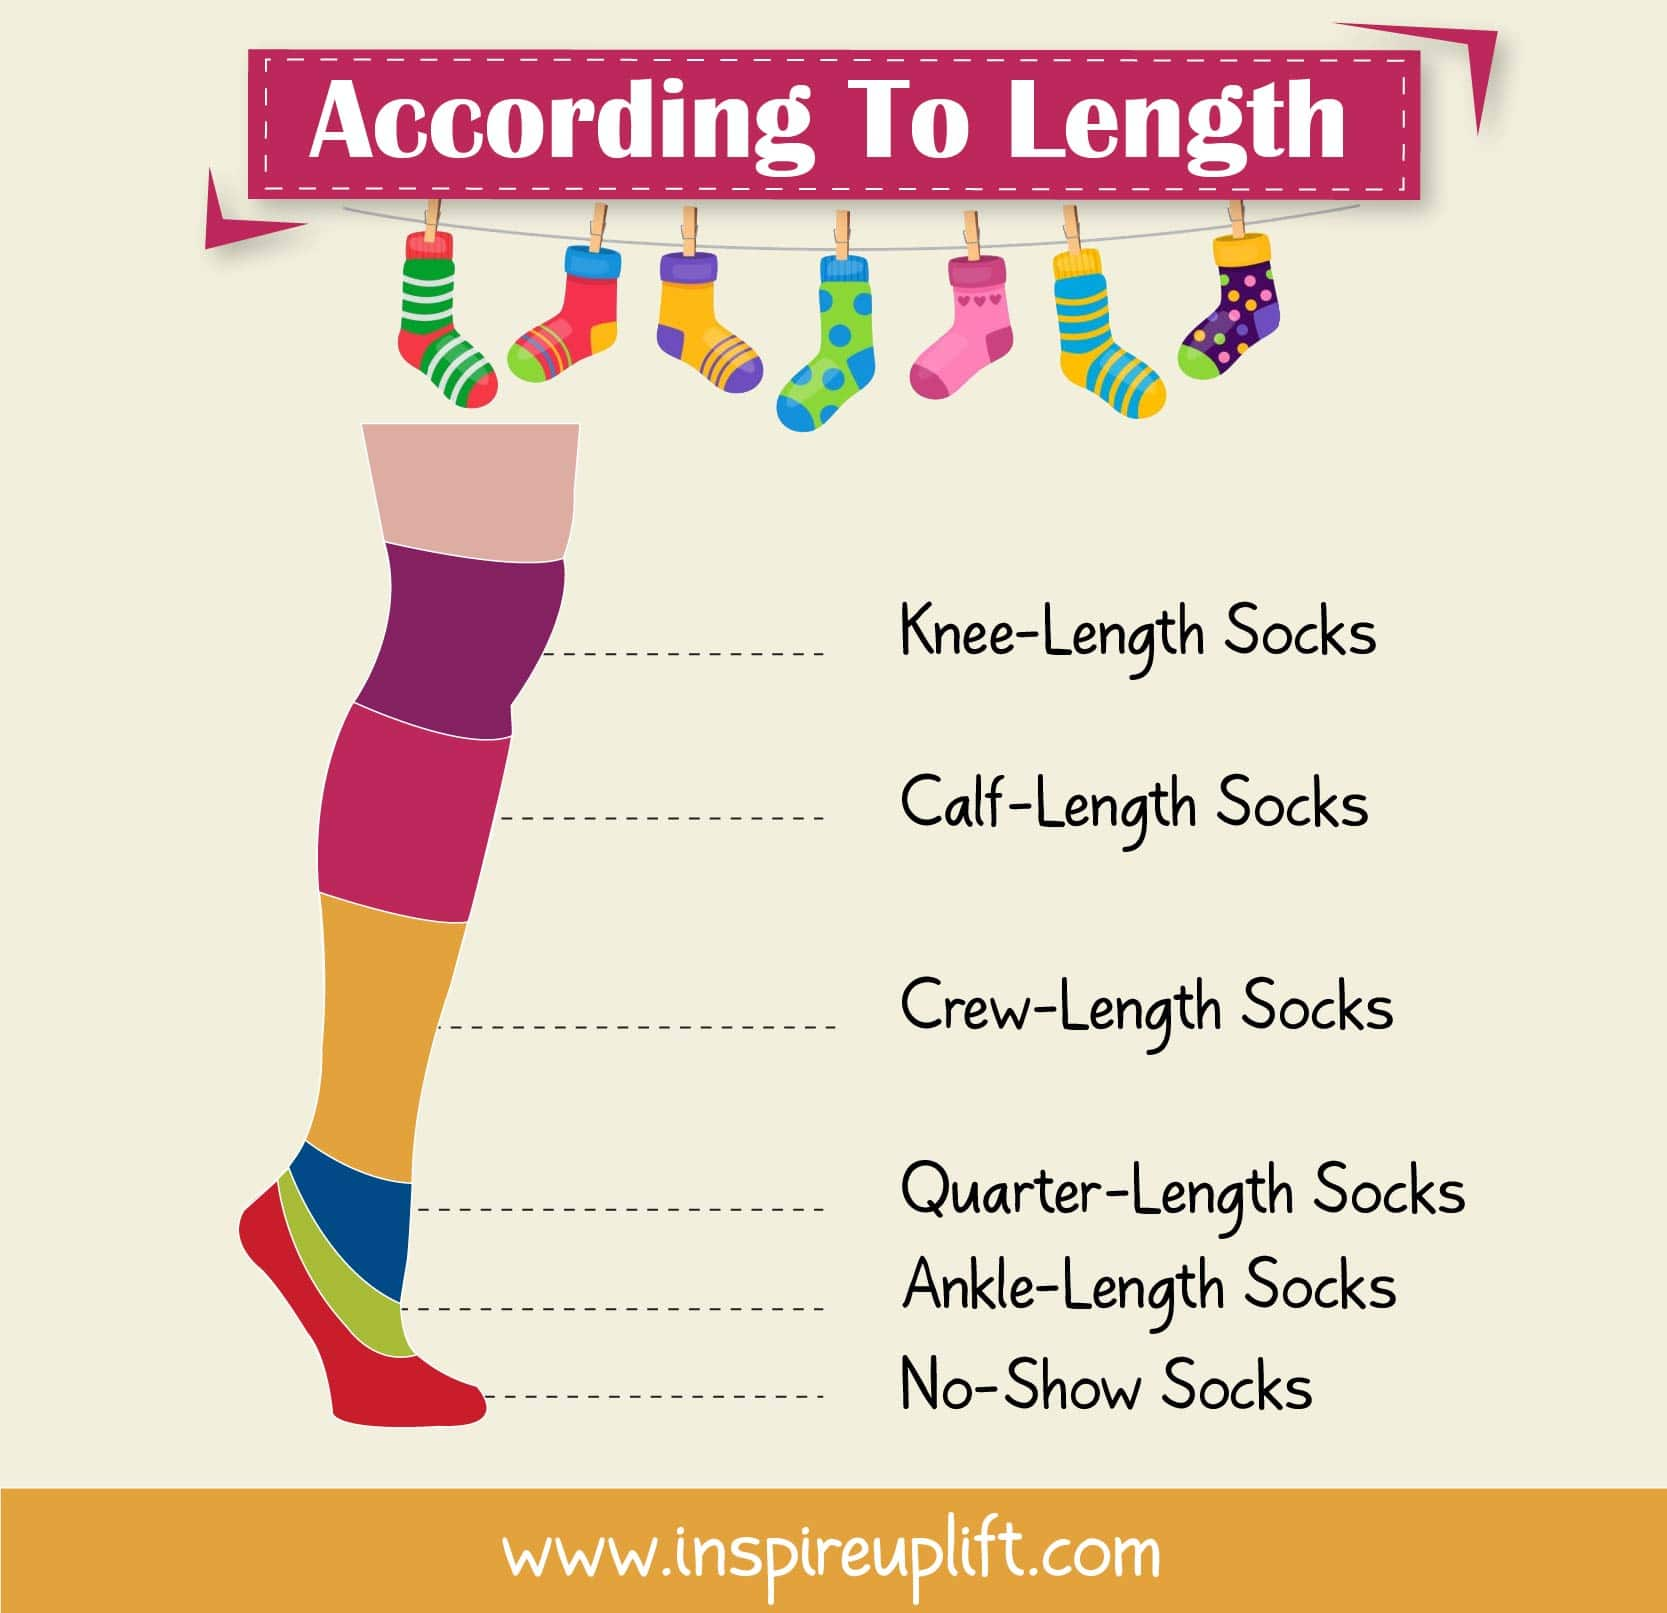 SOCK TYPES ACCORDING TO LENGTH